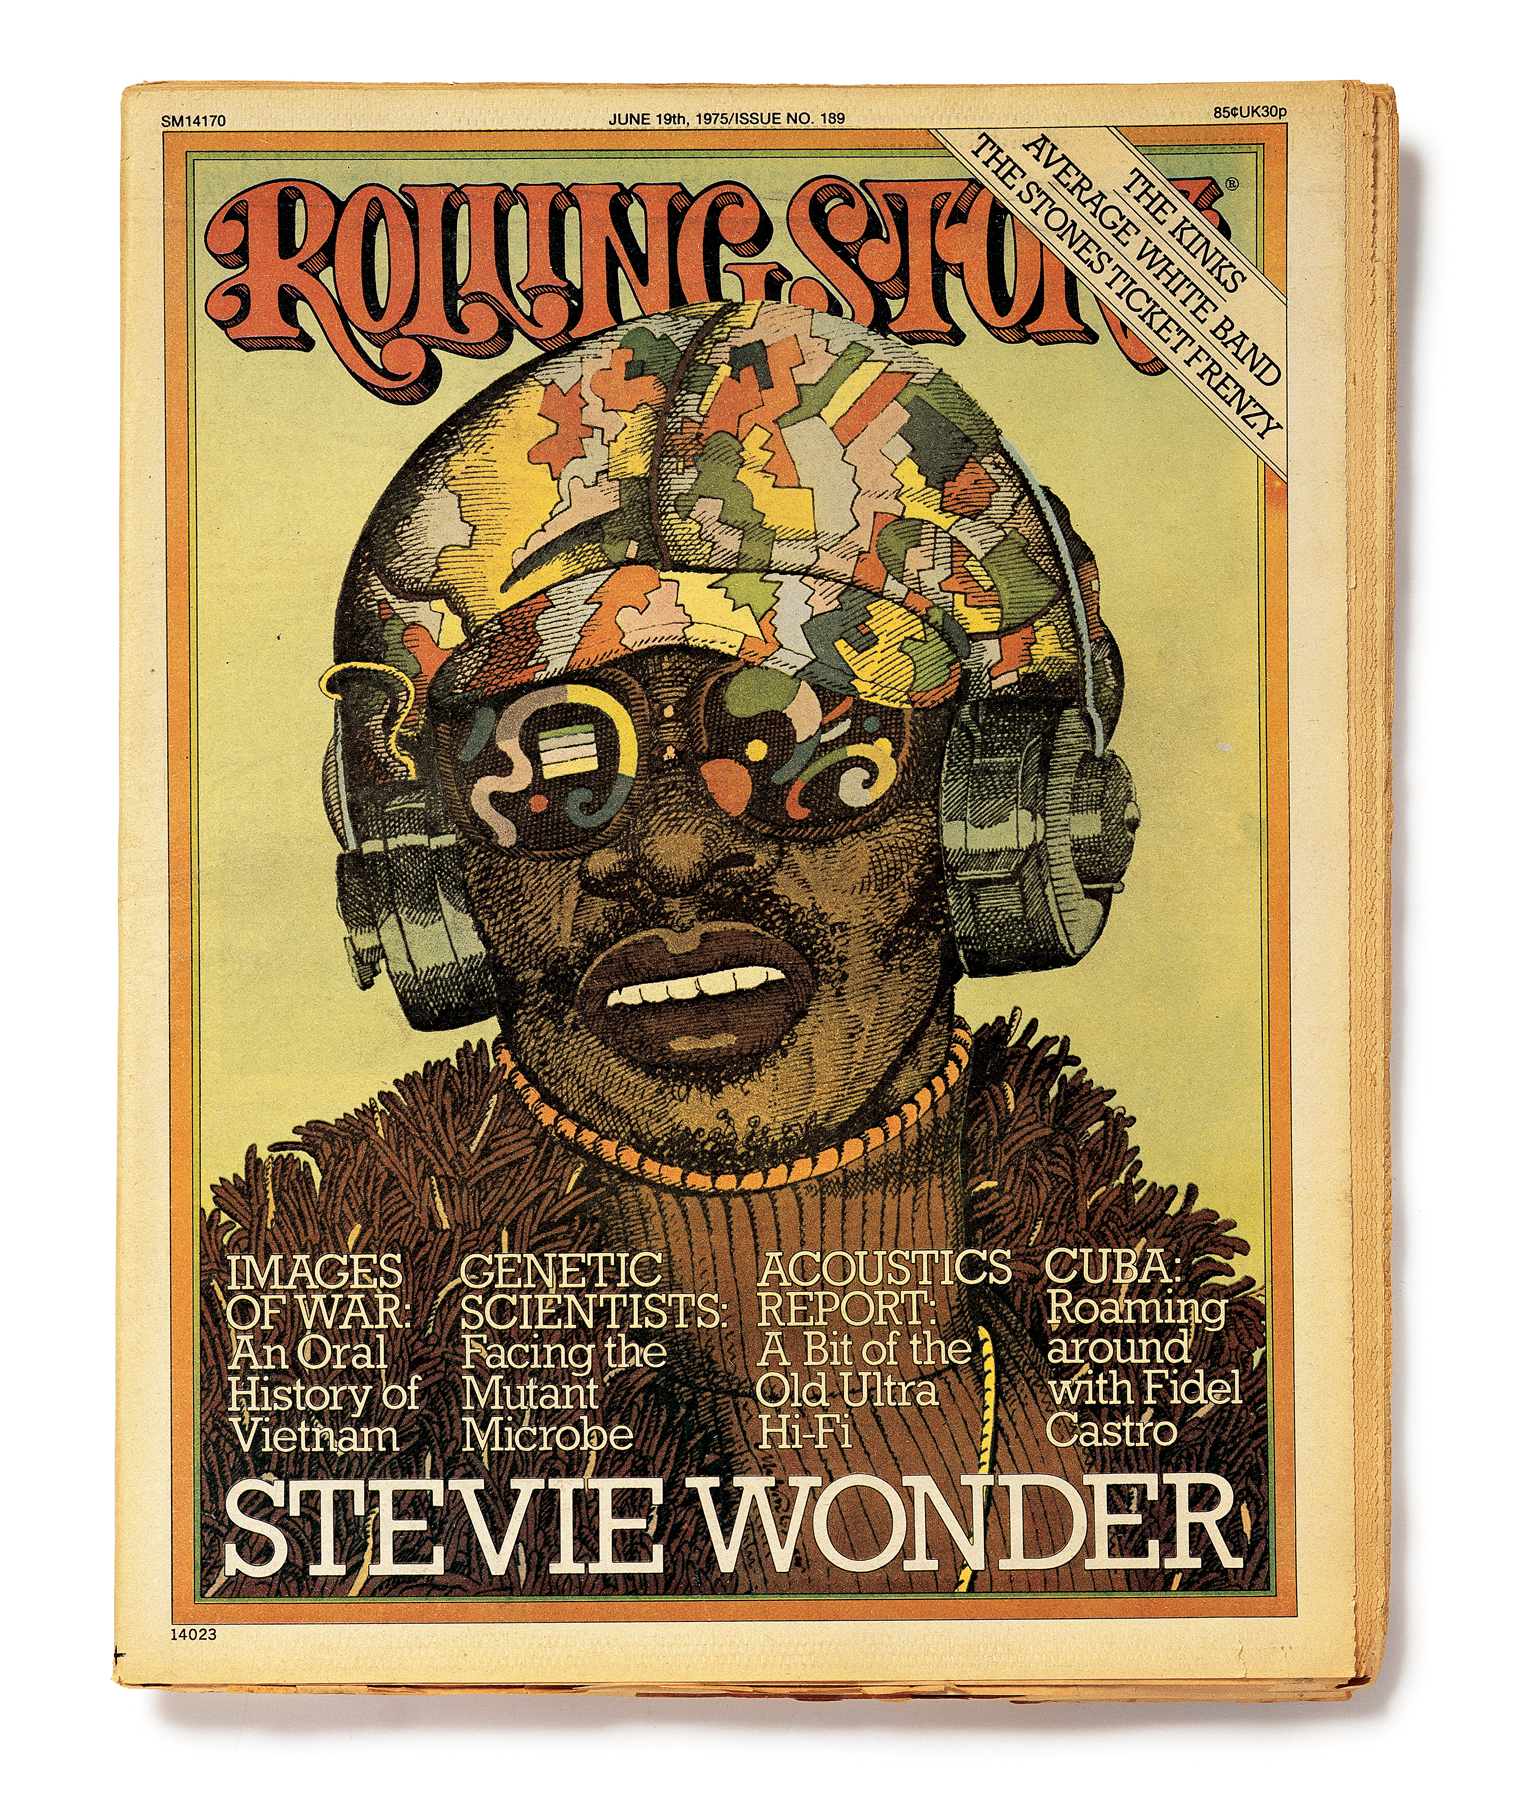 Stevie Wonder on the cover of the June 19, 1975 issue of Rolling Stone.